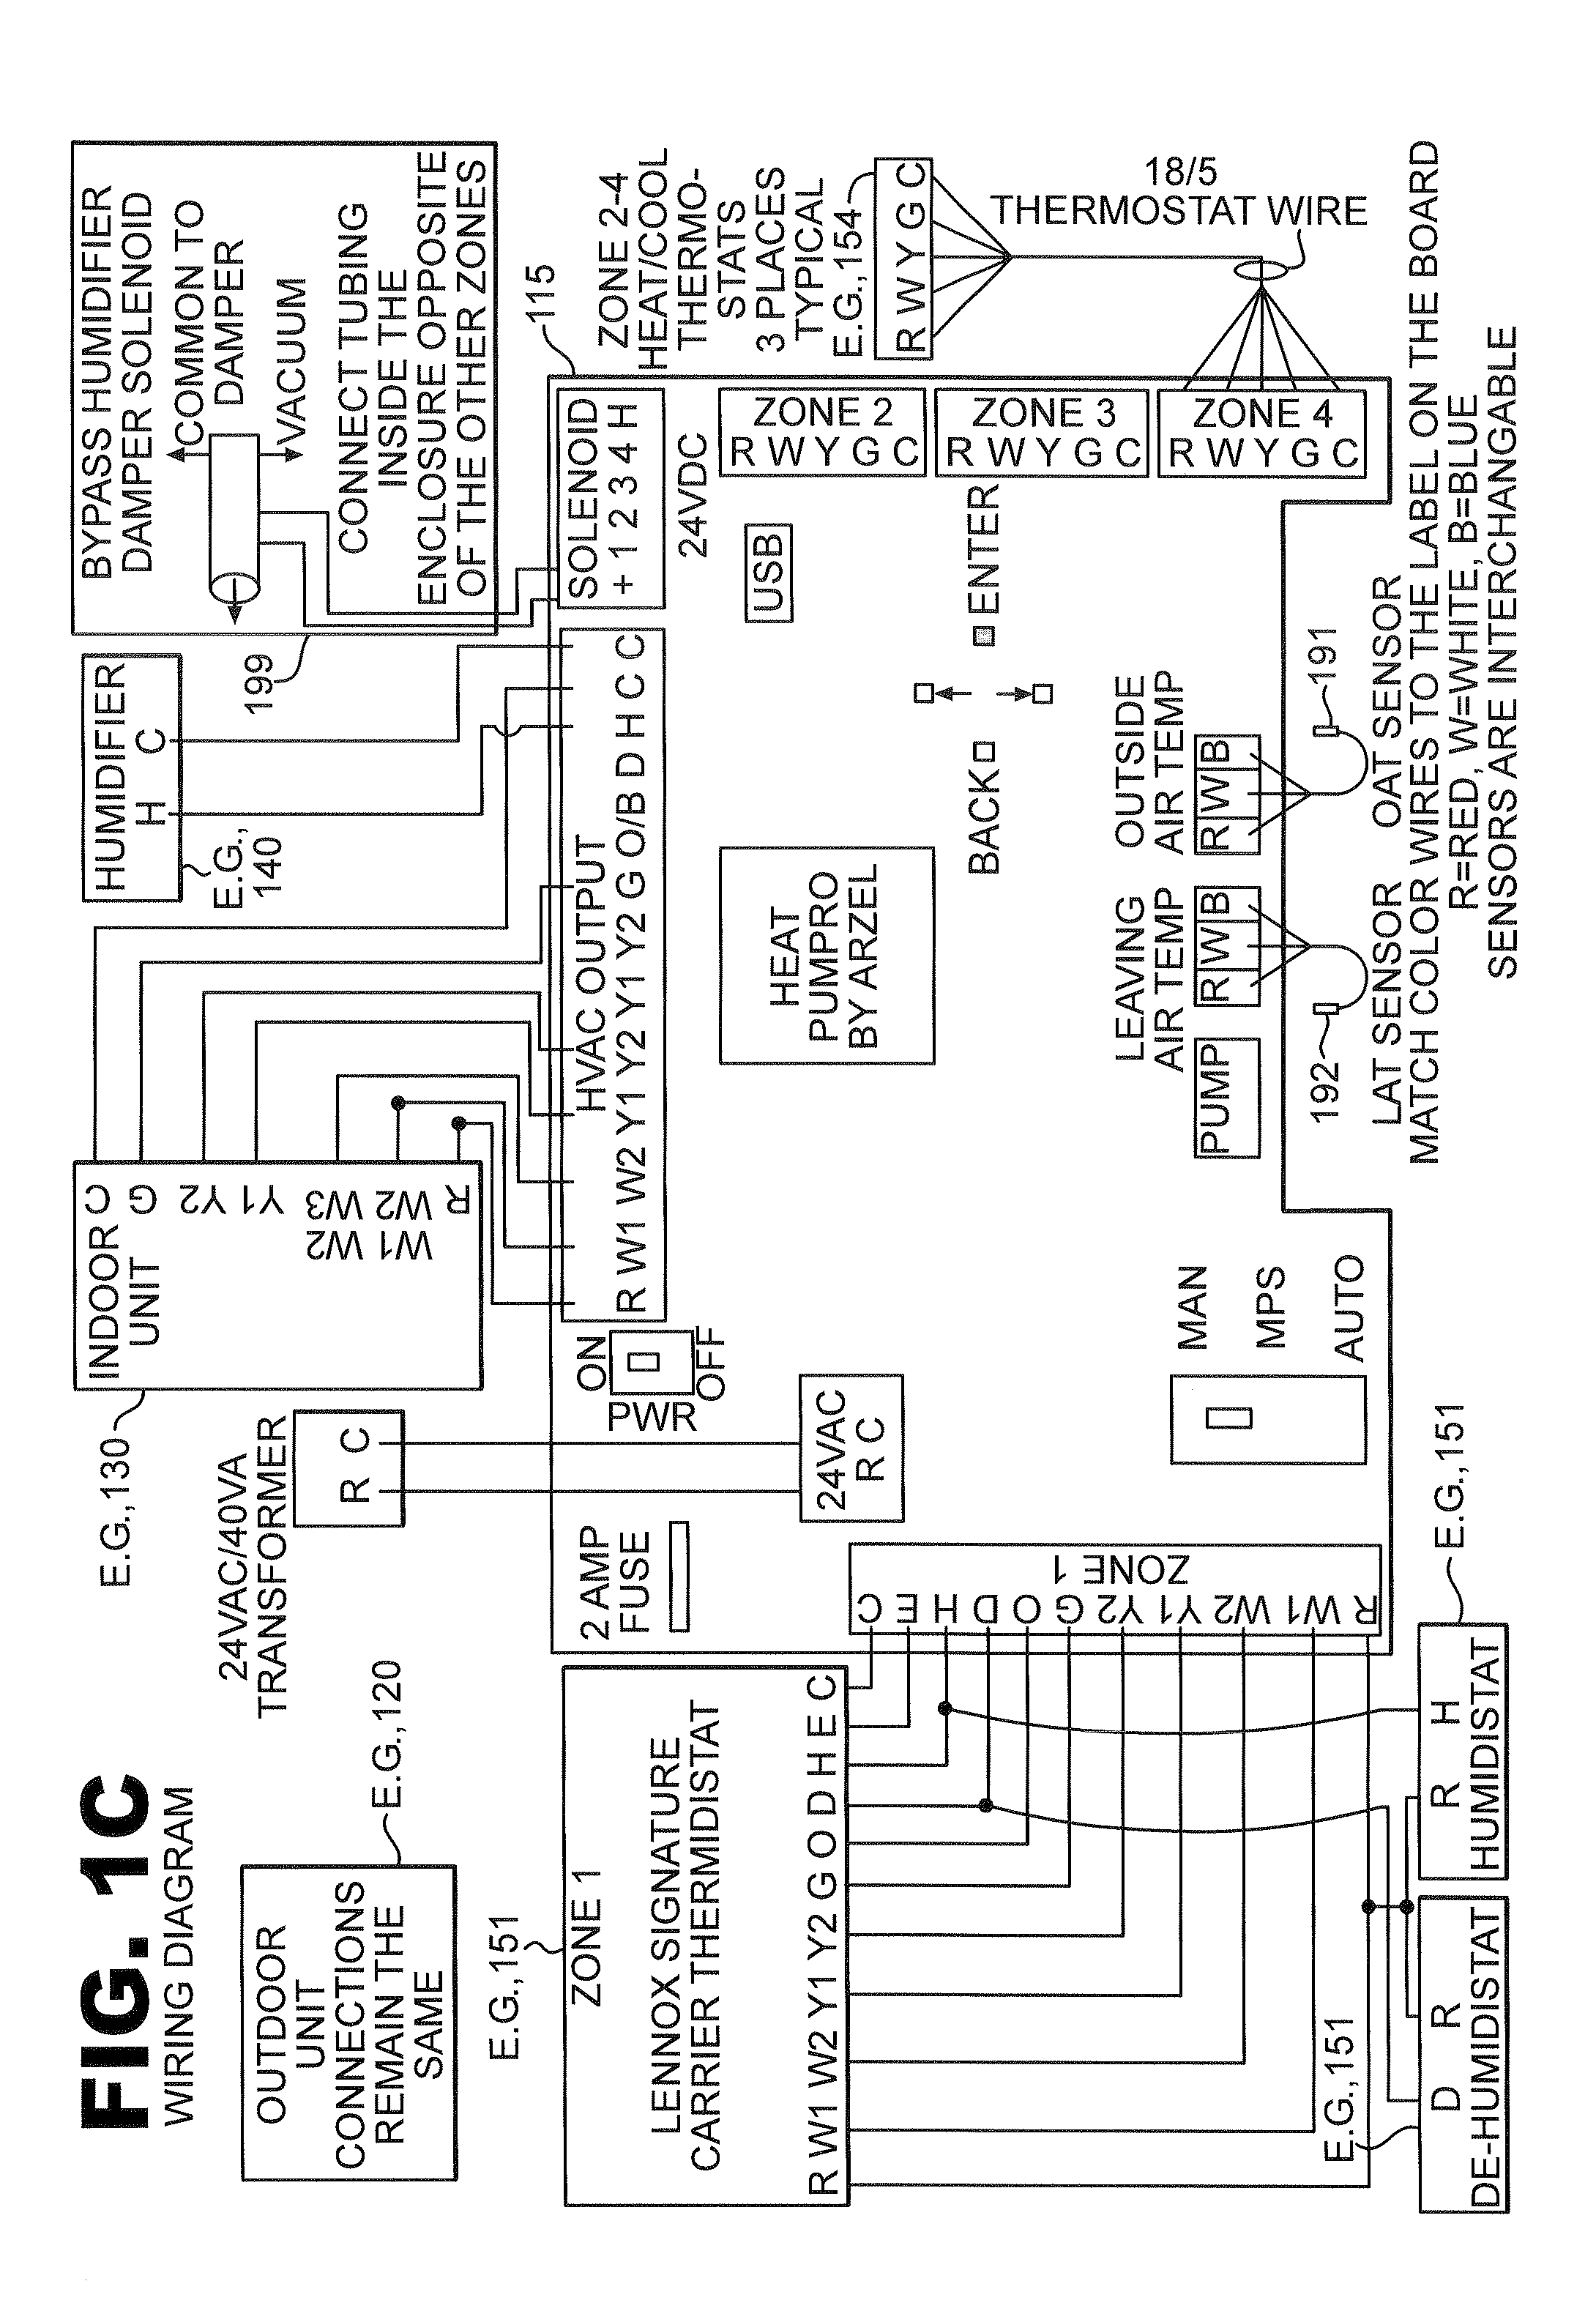 Wiring Diagram For Copeland Compressor Board 580 0041 00